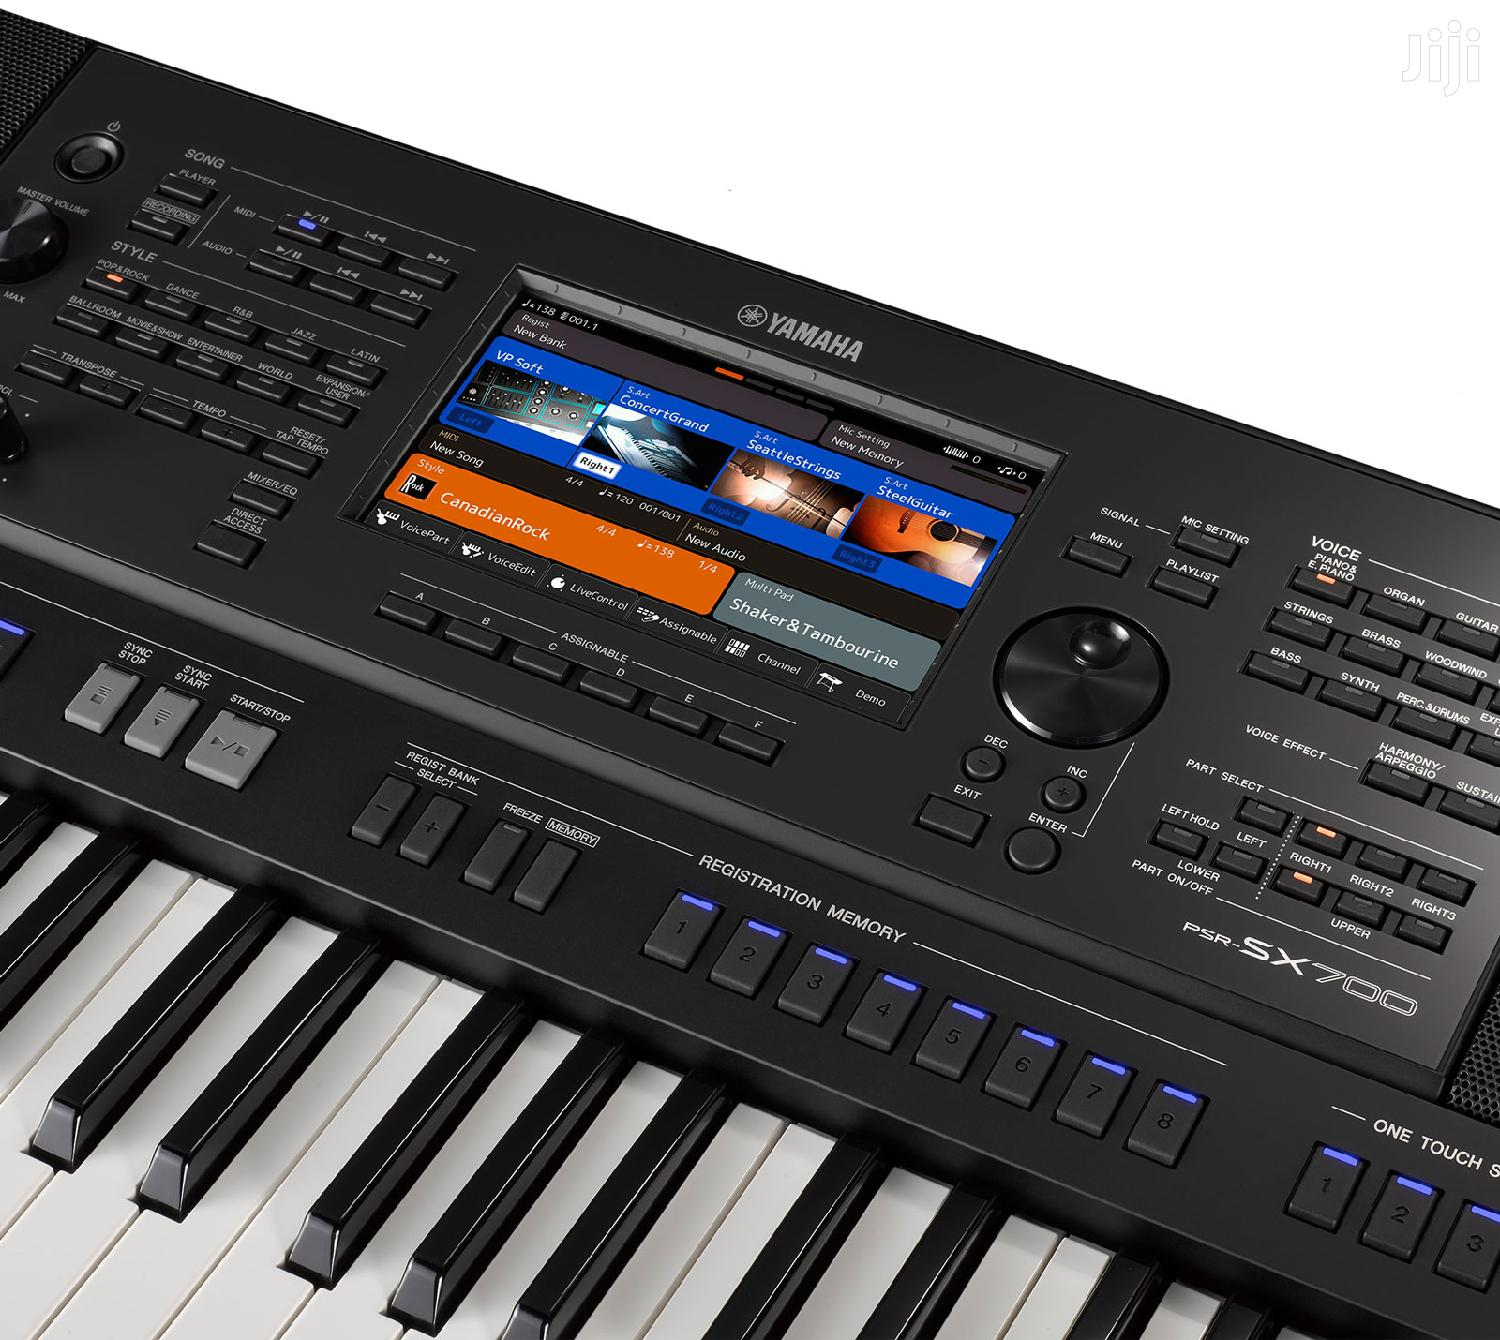 Yamaha Psr Sx700 | Musical Instruments & Gear for sale in Adabraka, Greater Accra, Ghana